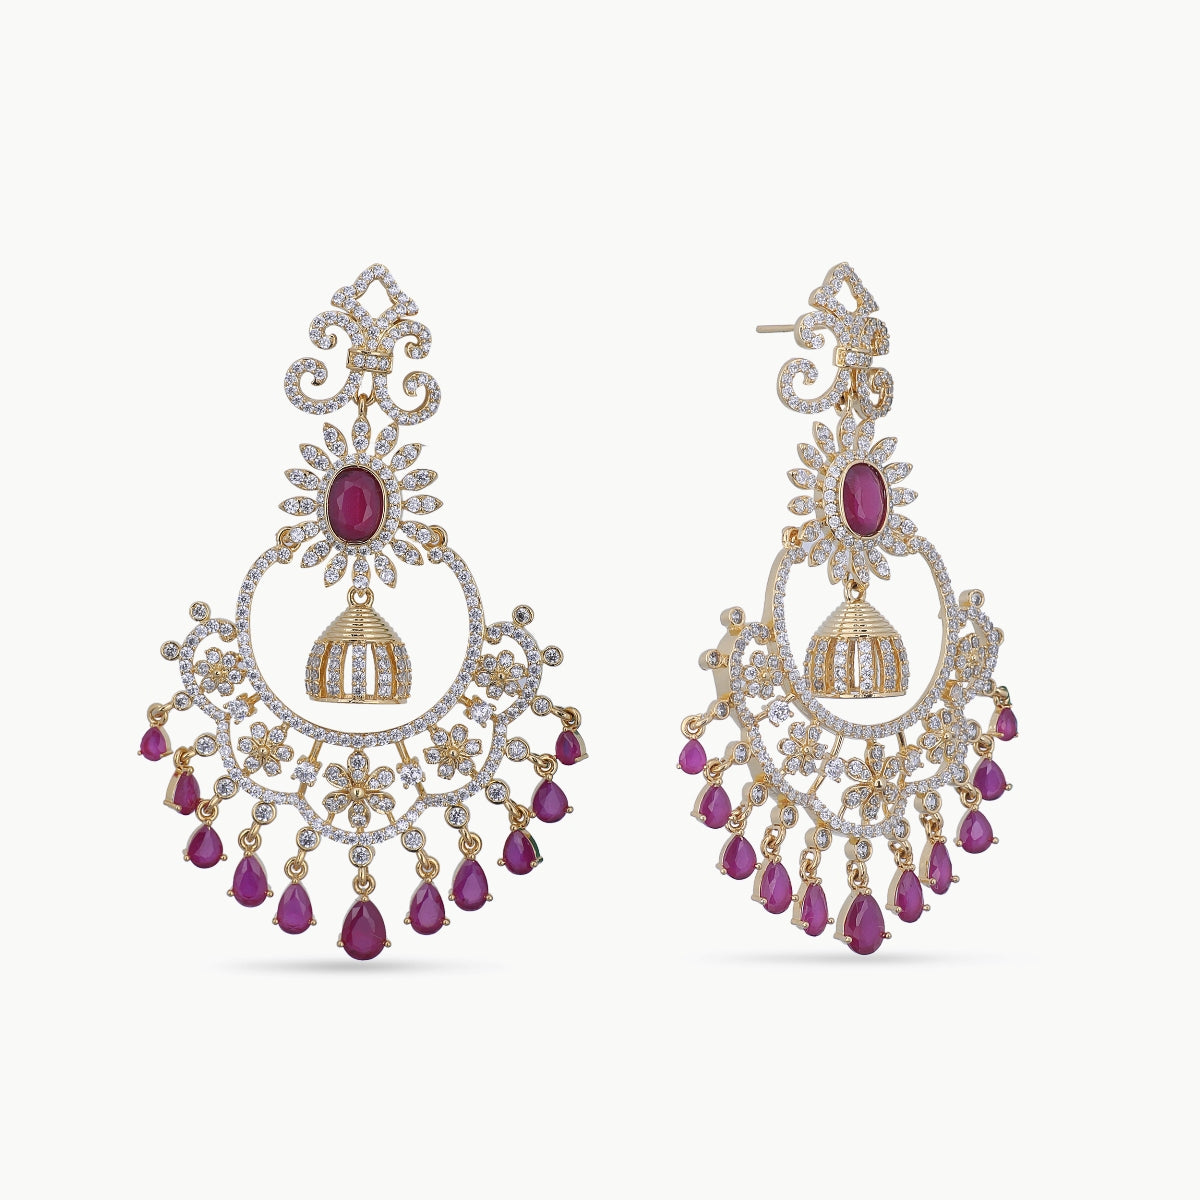 Nainika Nakshatra CZ Earrings